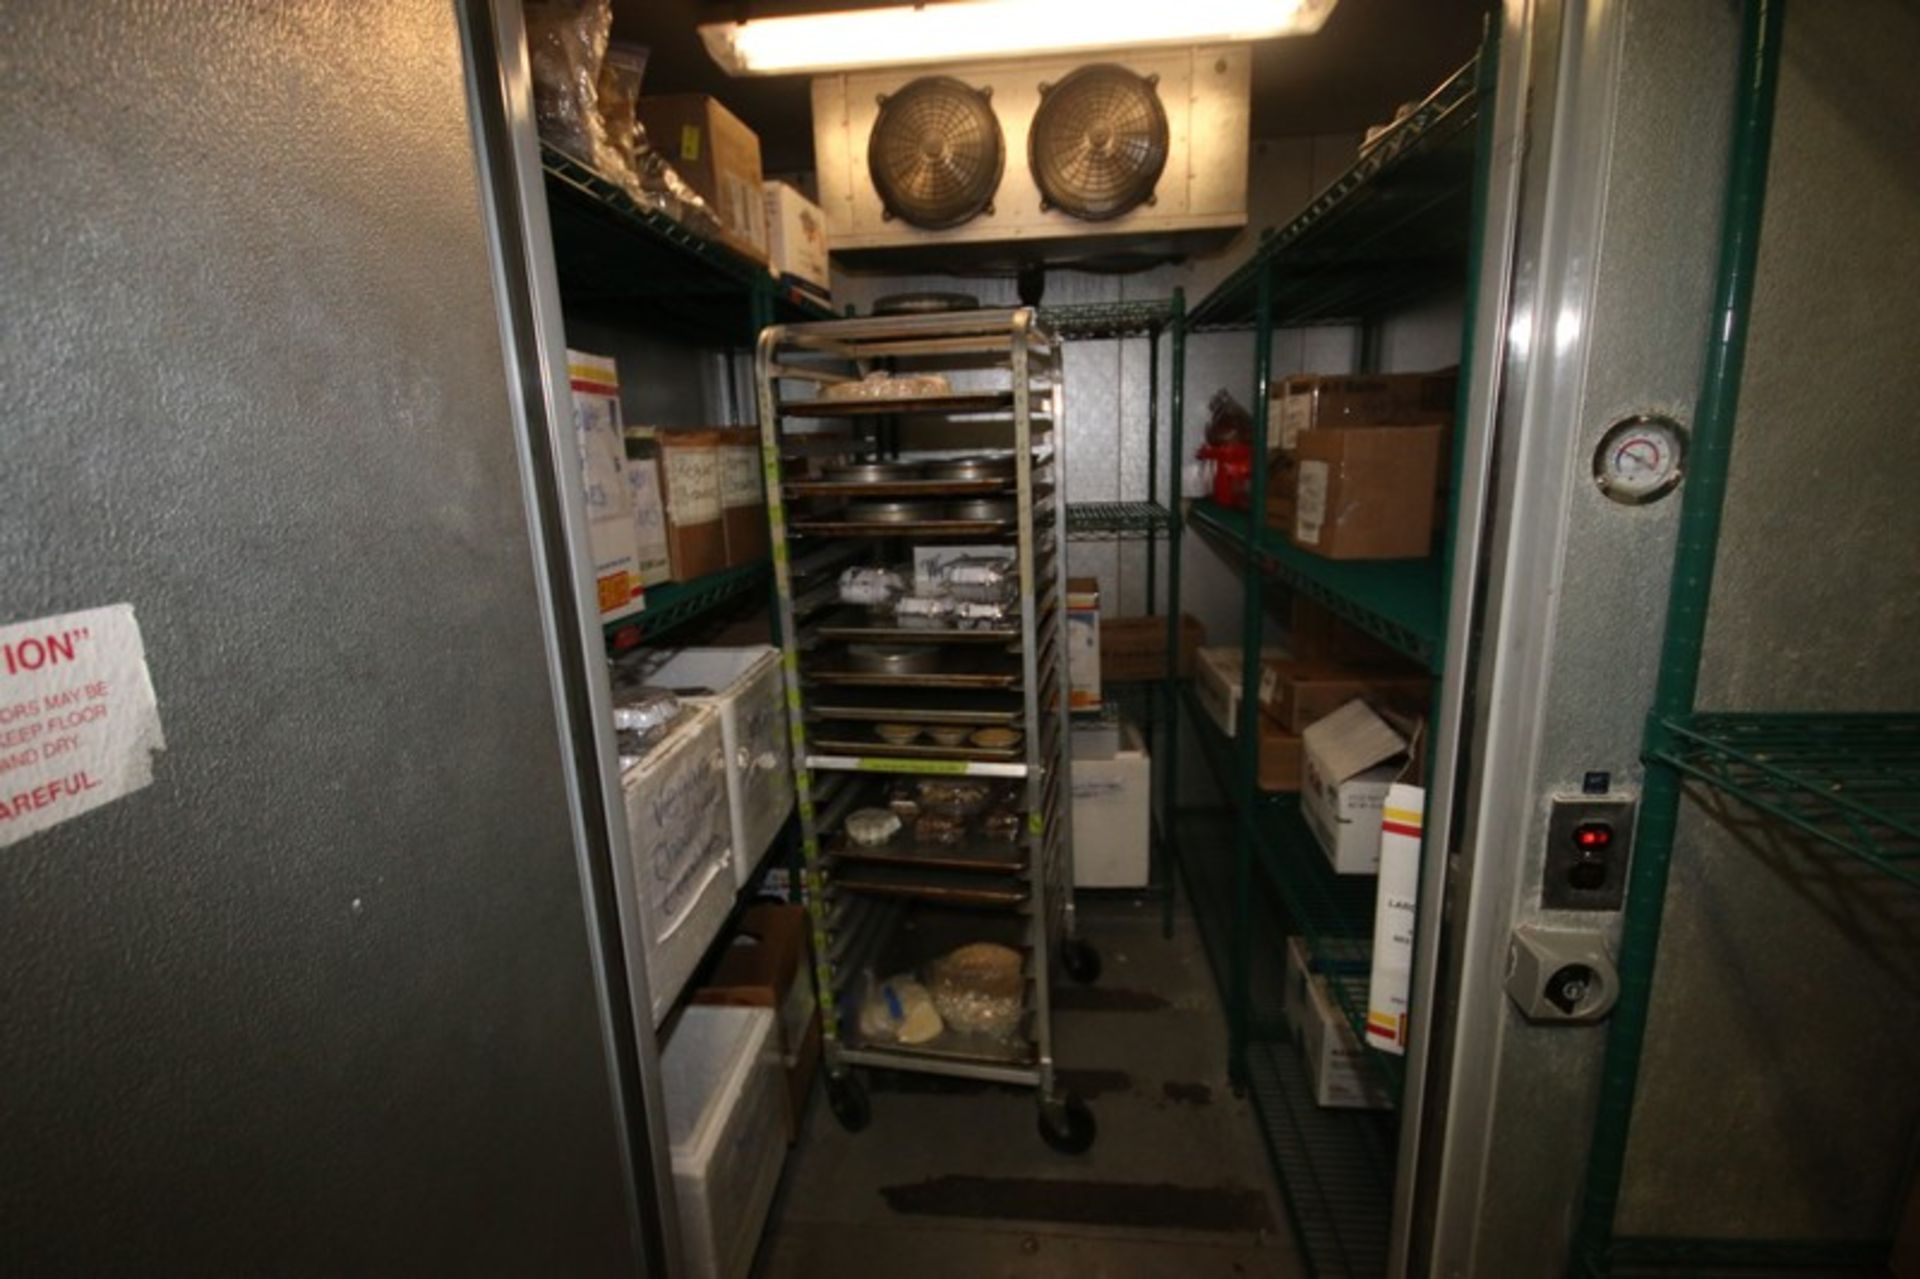 Harford Dual Compartment Walk-In Cooler & Freezer, S/N 410021576 & 410021576, Compartment Sizes: - Image 10 of 18